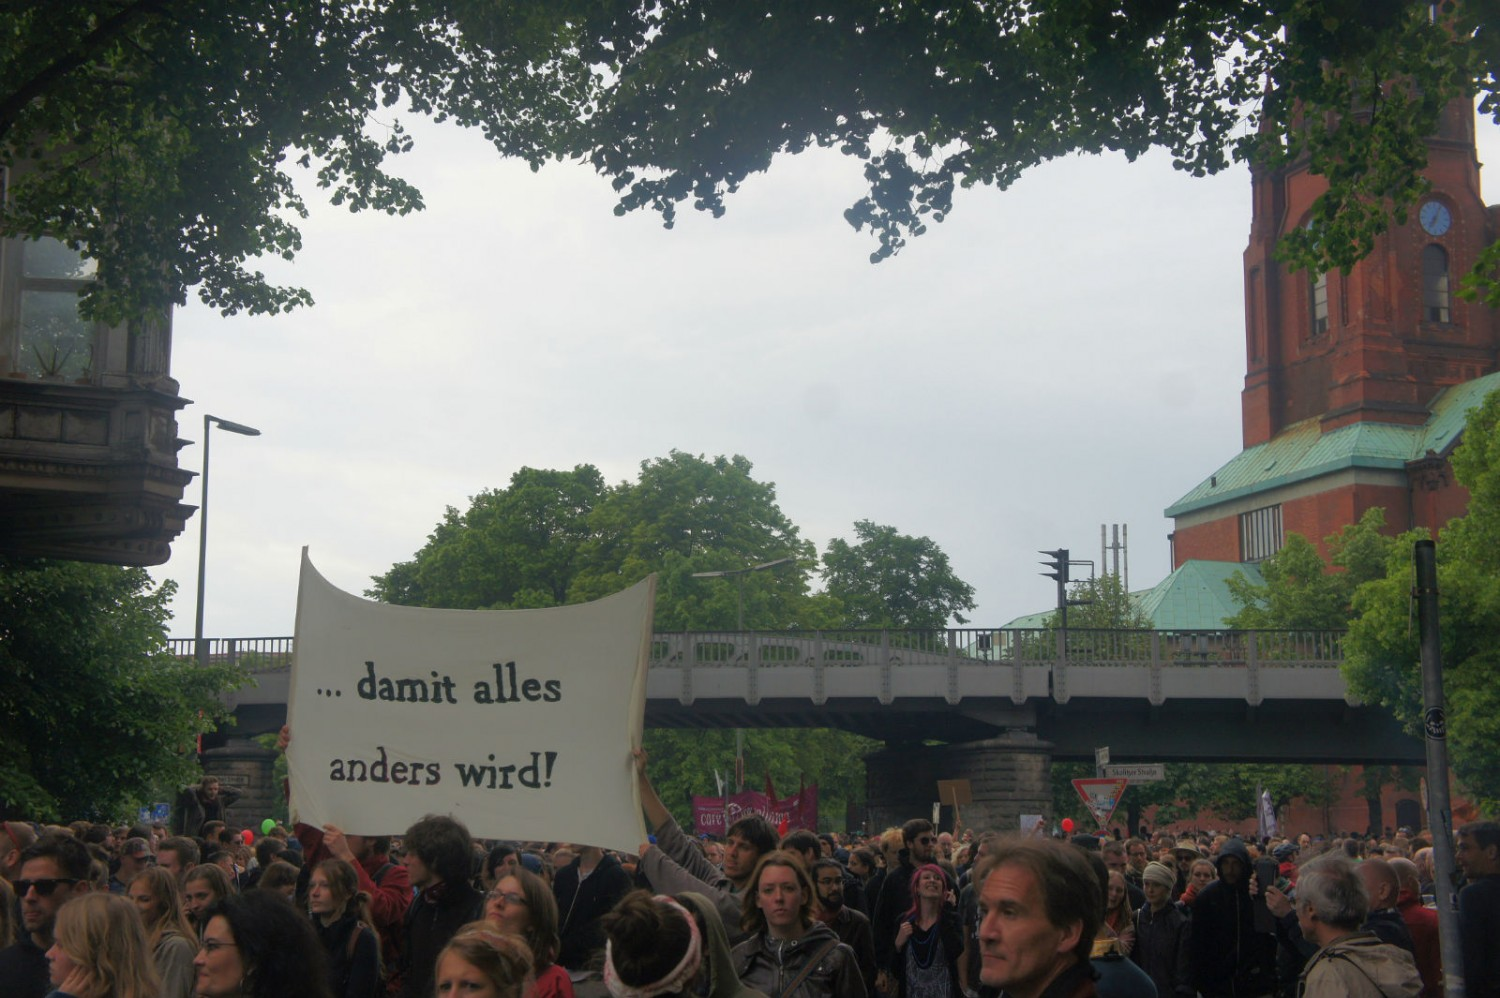 The protest sets off from Görlitzer Bahnhof